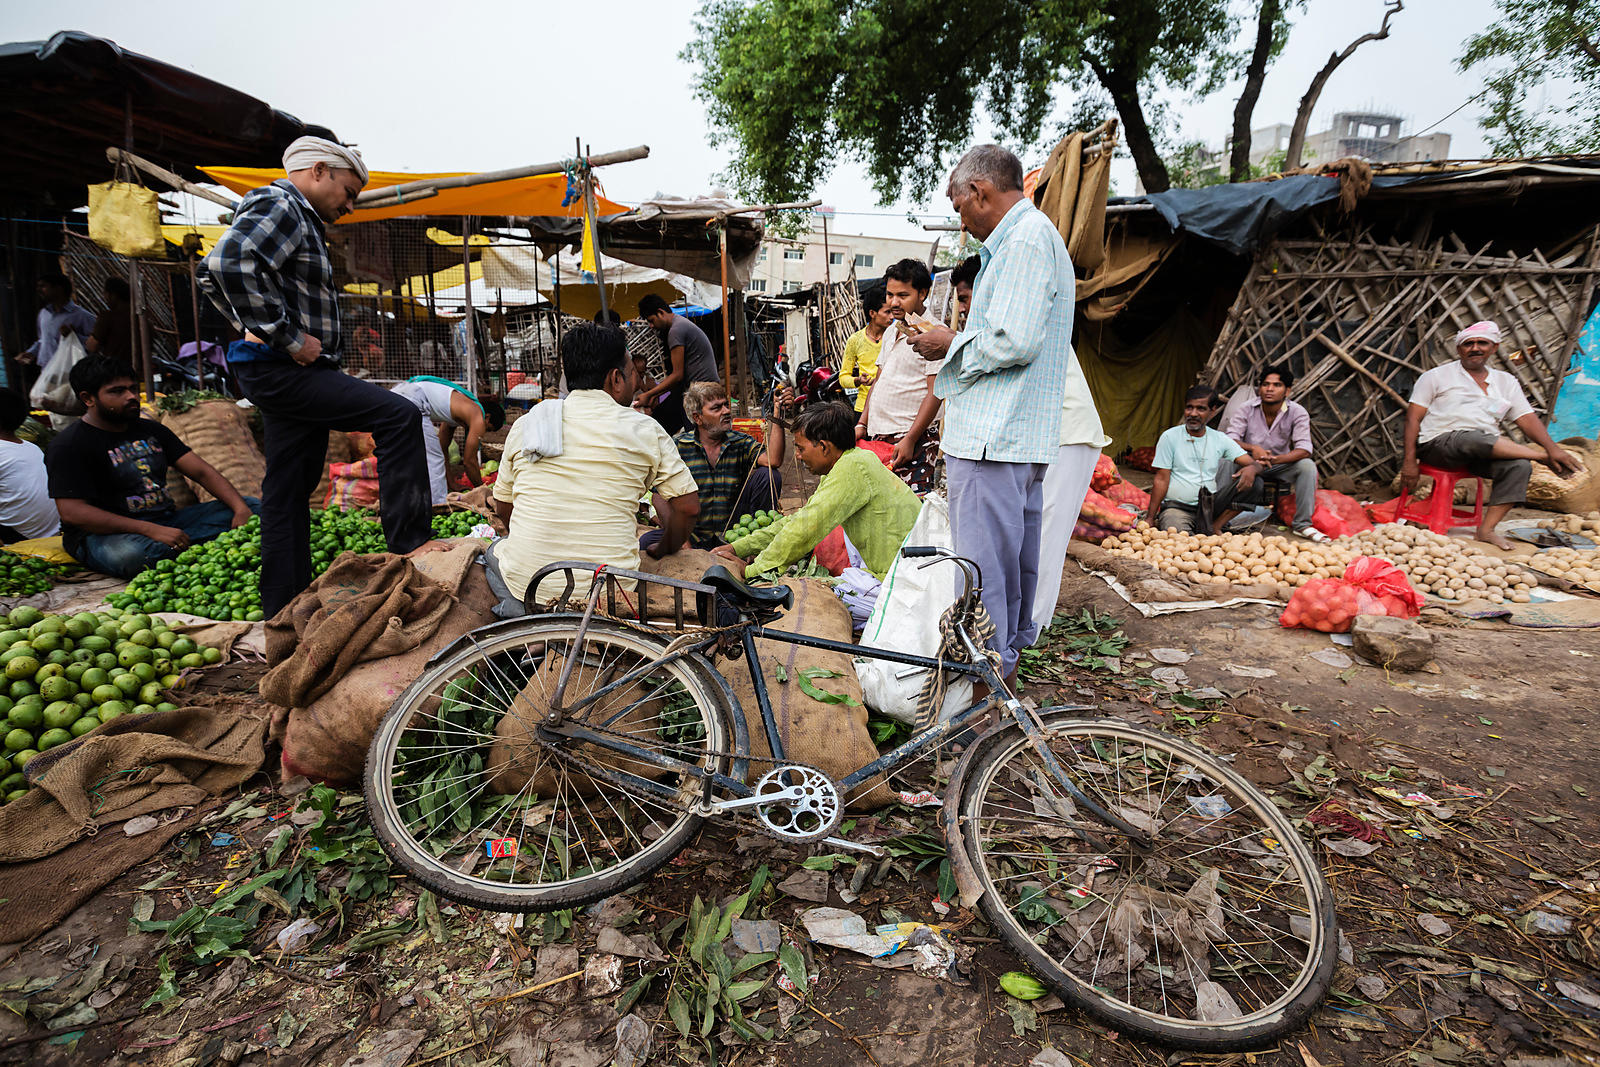 Dealers at the Agra Wholesale Market